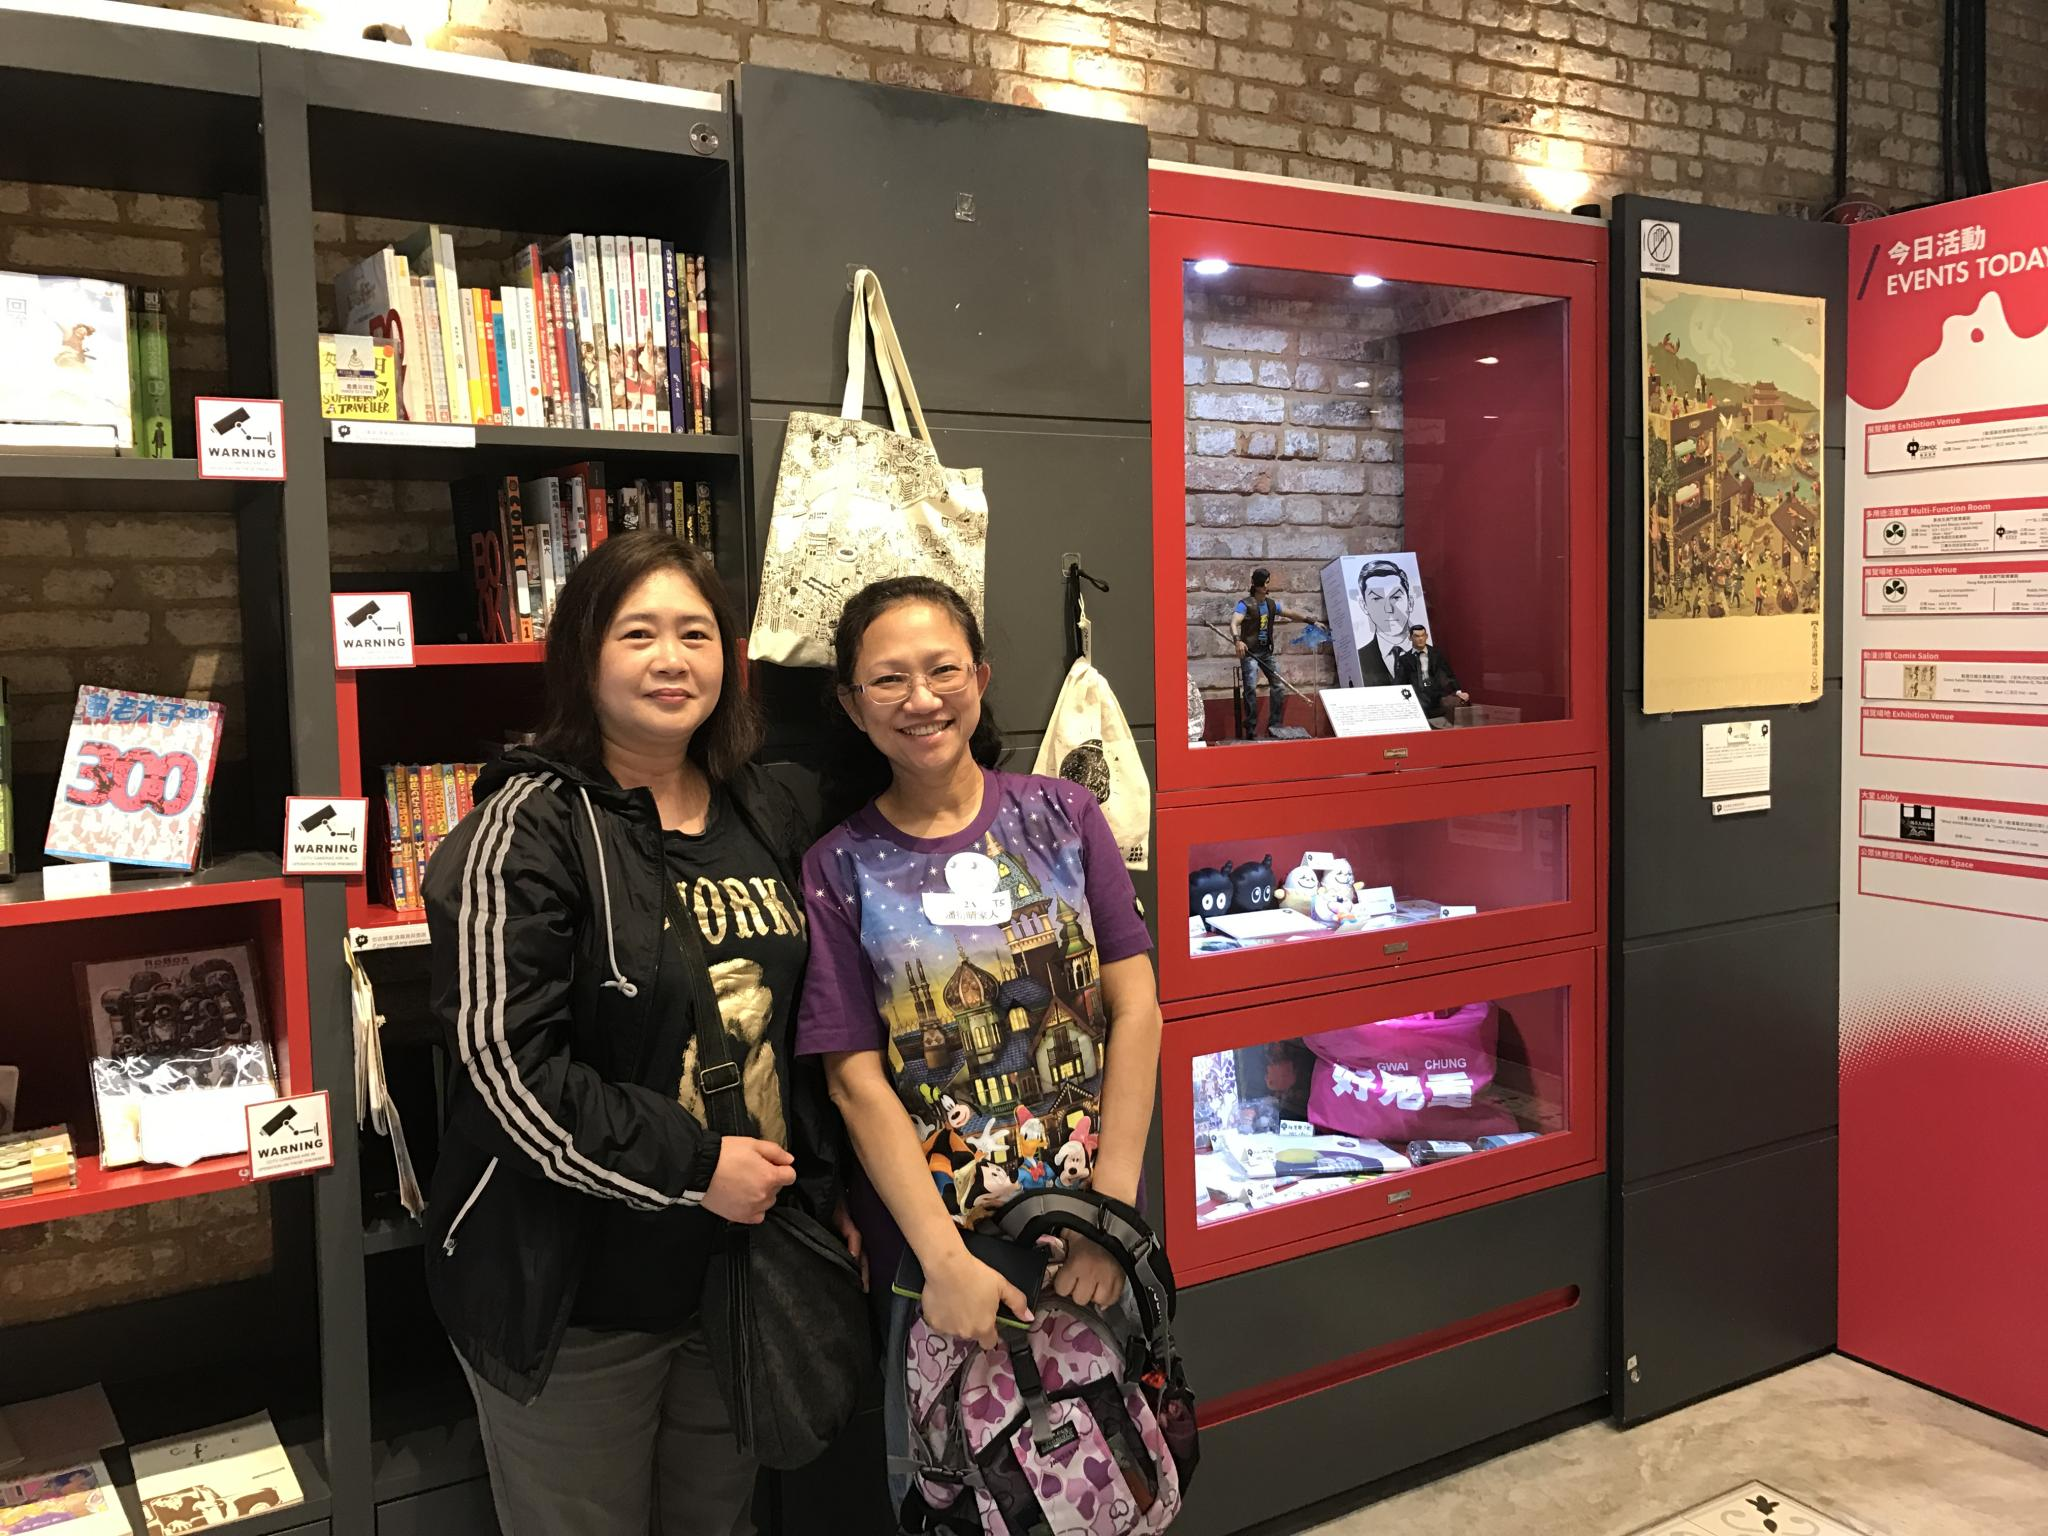 The participants are visiting the Comix Home Base in Wan Chai.